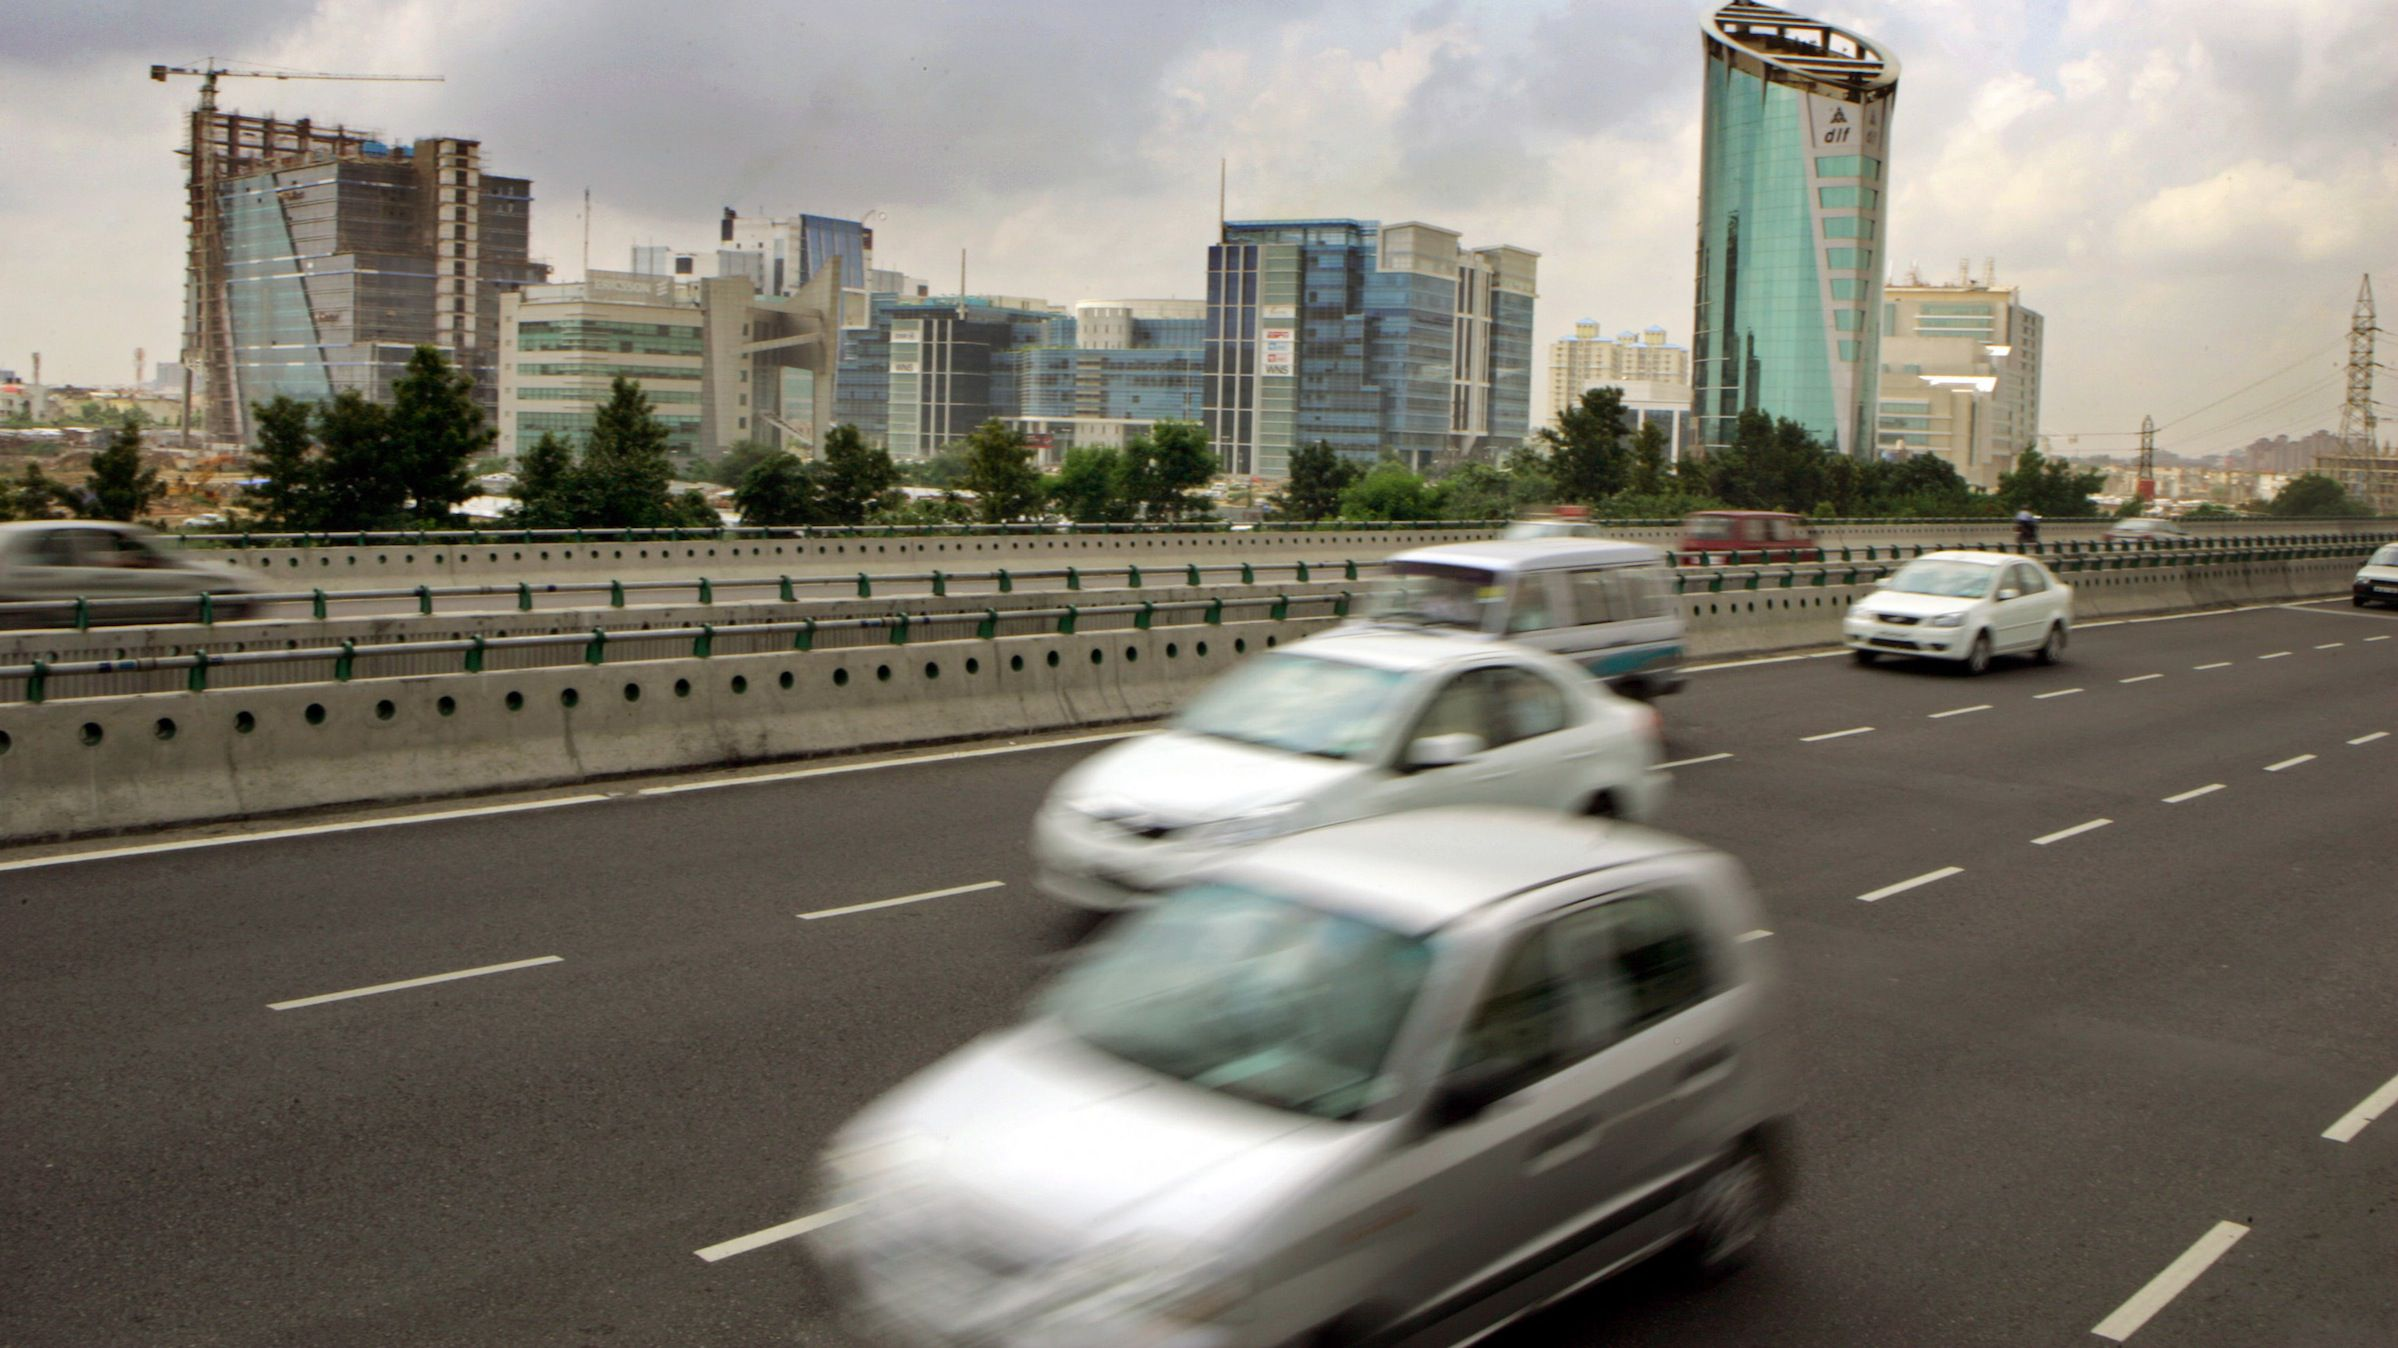 Rush hour traffic moves next to an expressway in the backdrop of office complexes in Gurgaon, India, Aug. 6, 2007. Sixty years ago this month, India and Pakistan won their Independence, now Pakistan, no stranger to domestic turmoil, is embroiled in an increasingly violent struggle between Islamic extremists and moderates, where as India is racing to become an economic powerhouse, lightning growth has transformed the country and fueled a consumer boom. (AP Photo/Gurinder Osan)